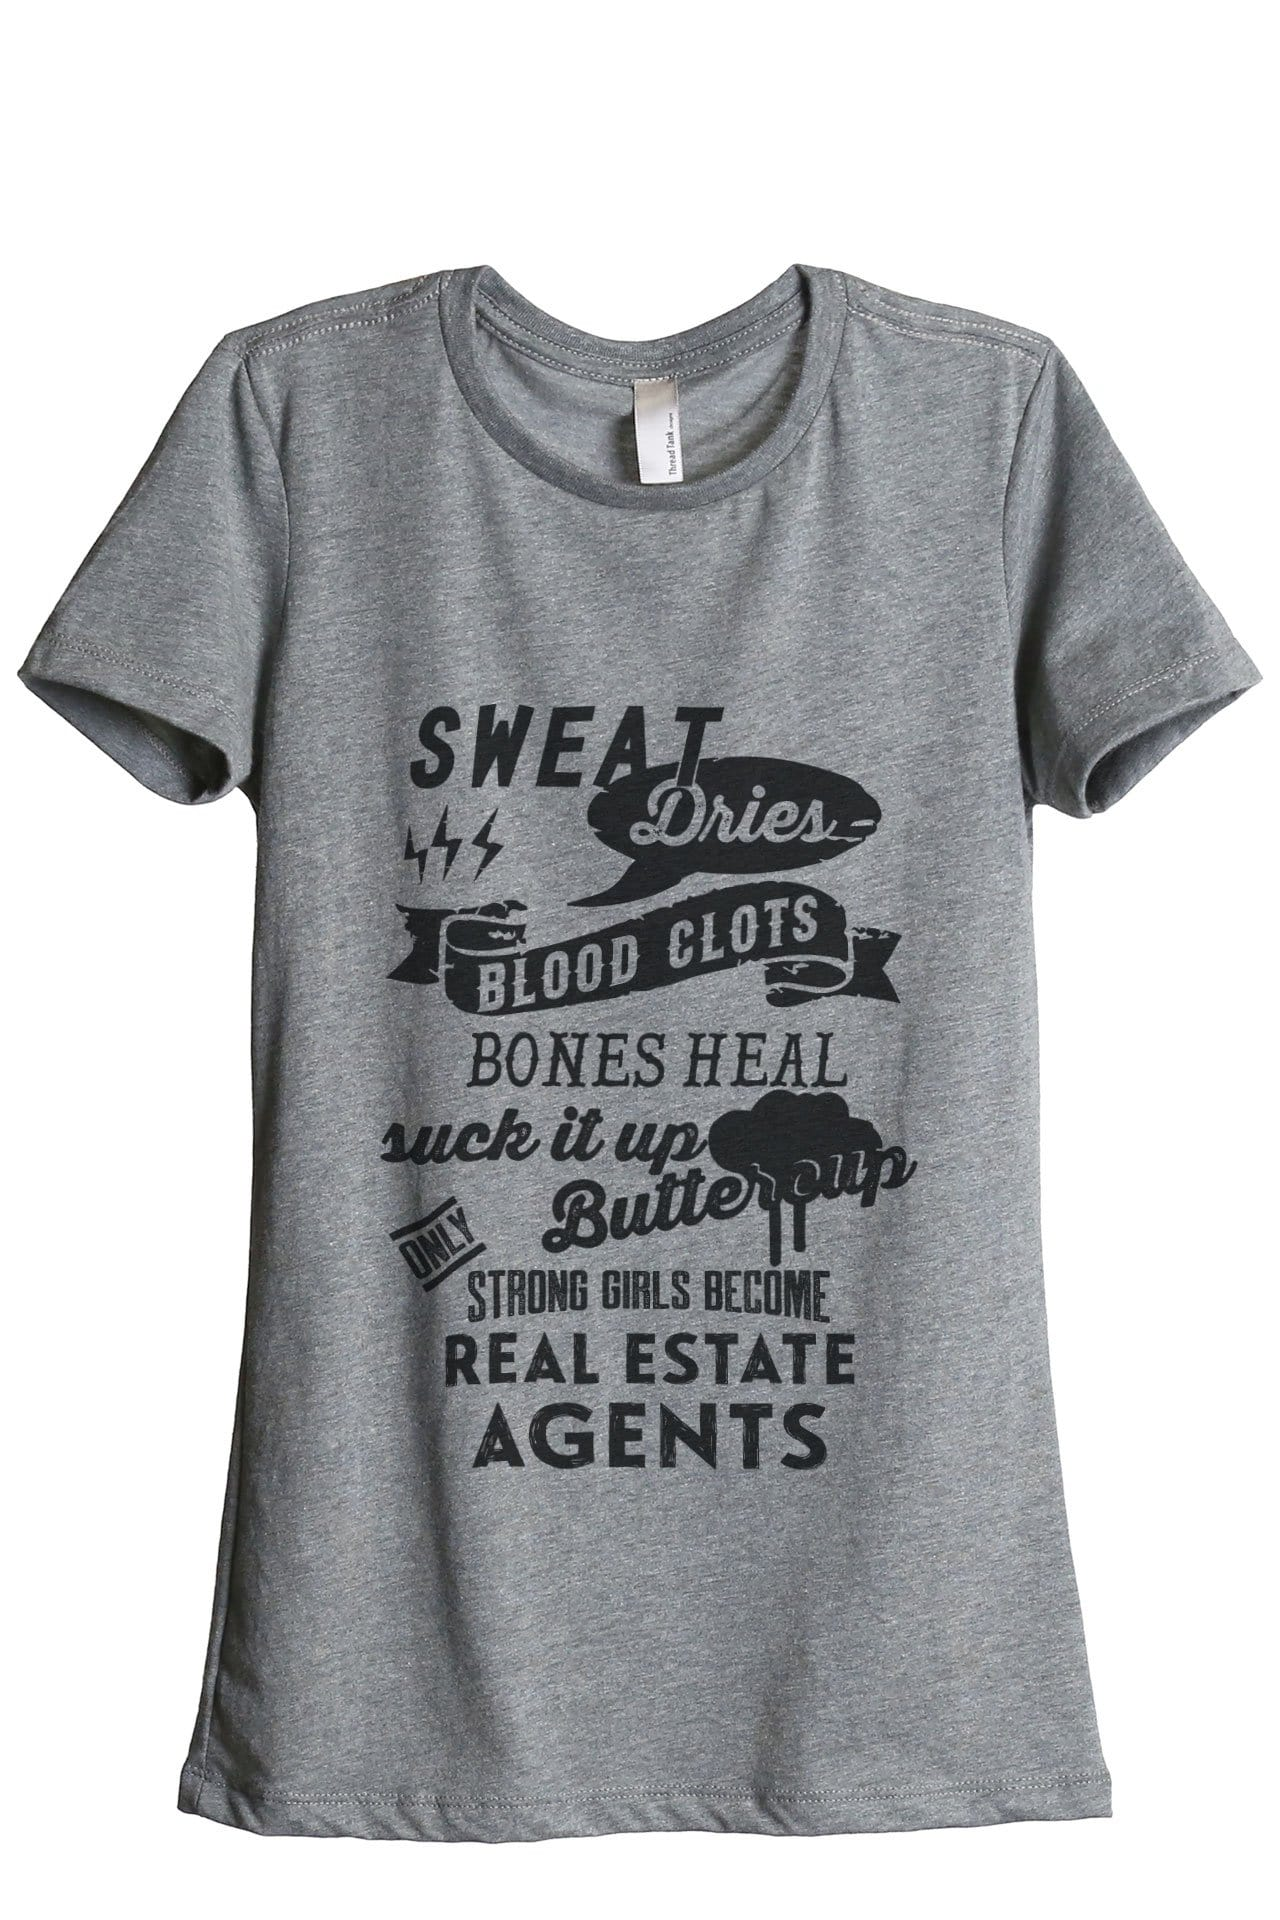 Strong Girls Become Real Estate Agents Women Heather Grey Relaxed Crew T-Shirt Tee Top